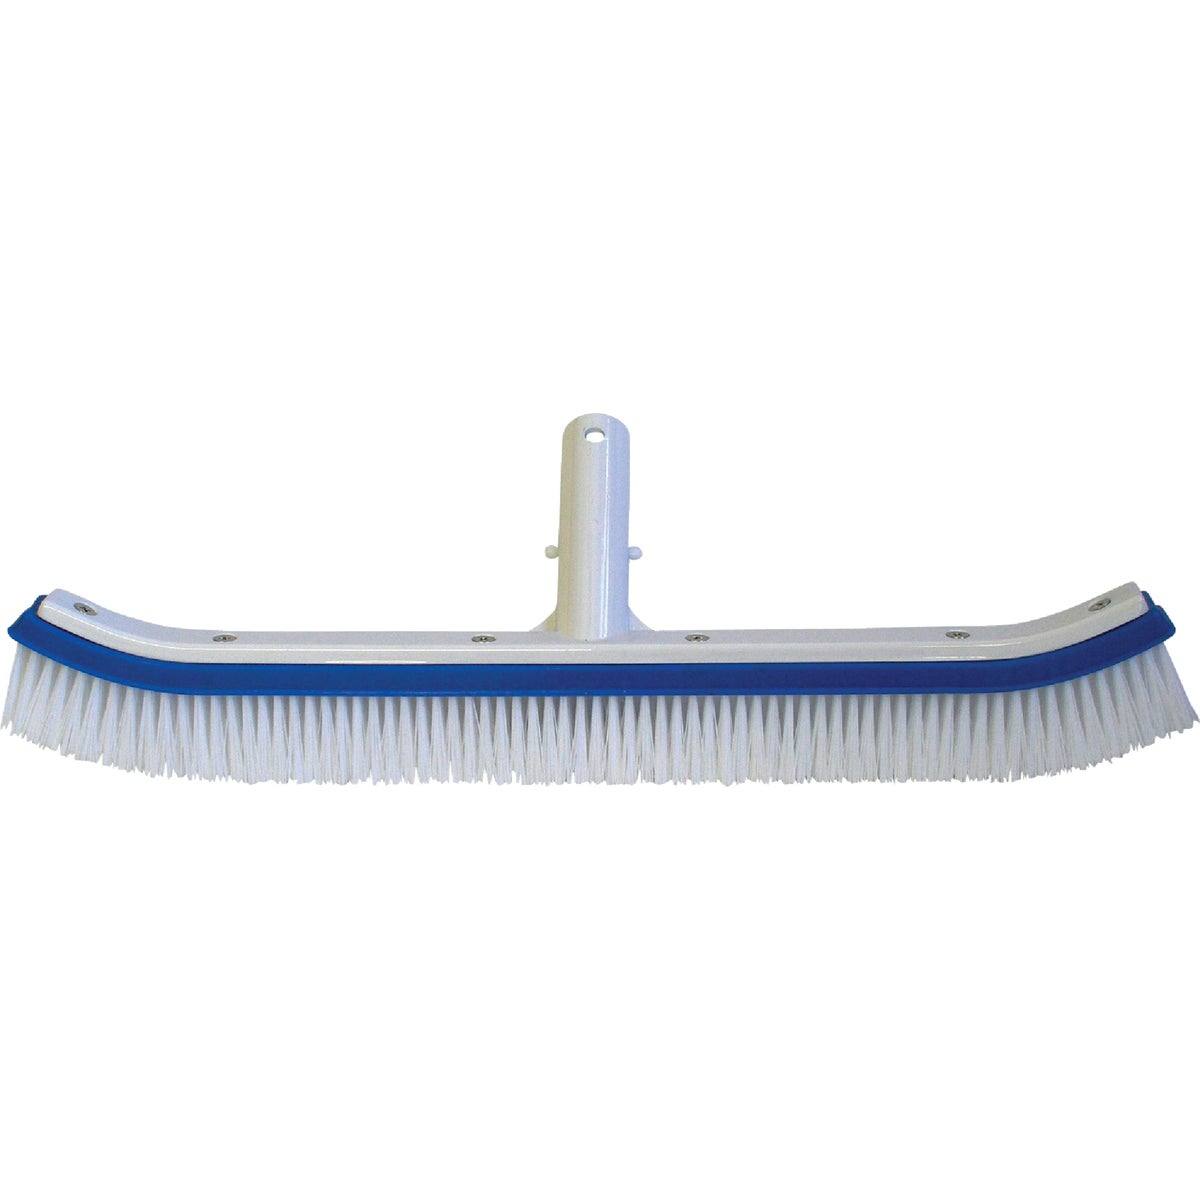 "18"" CURVED WALL BRUSH"